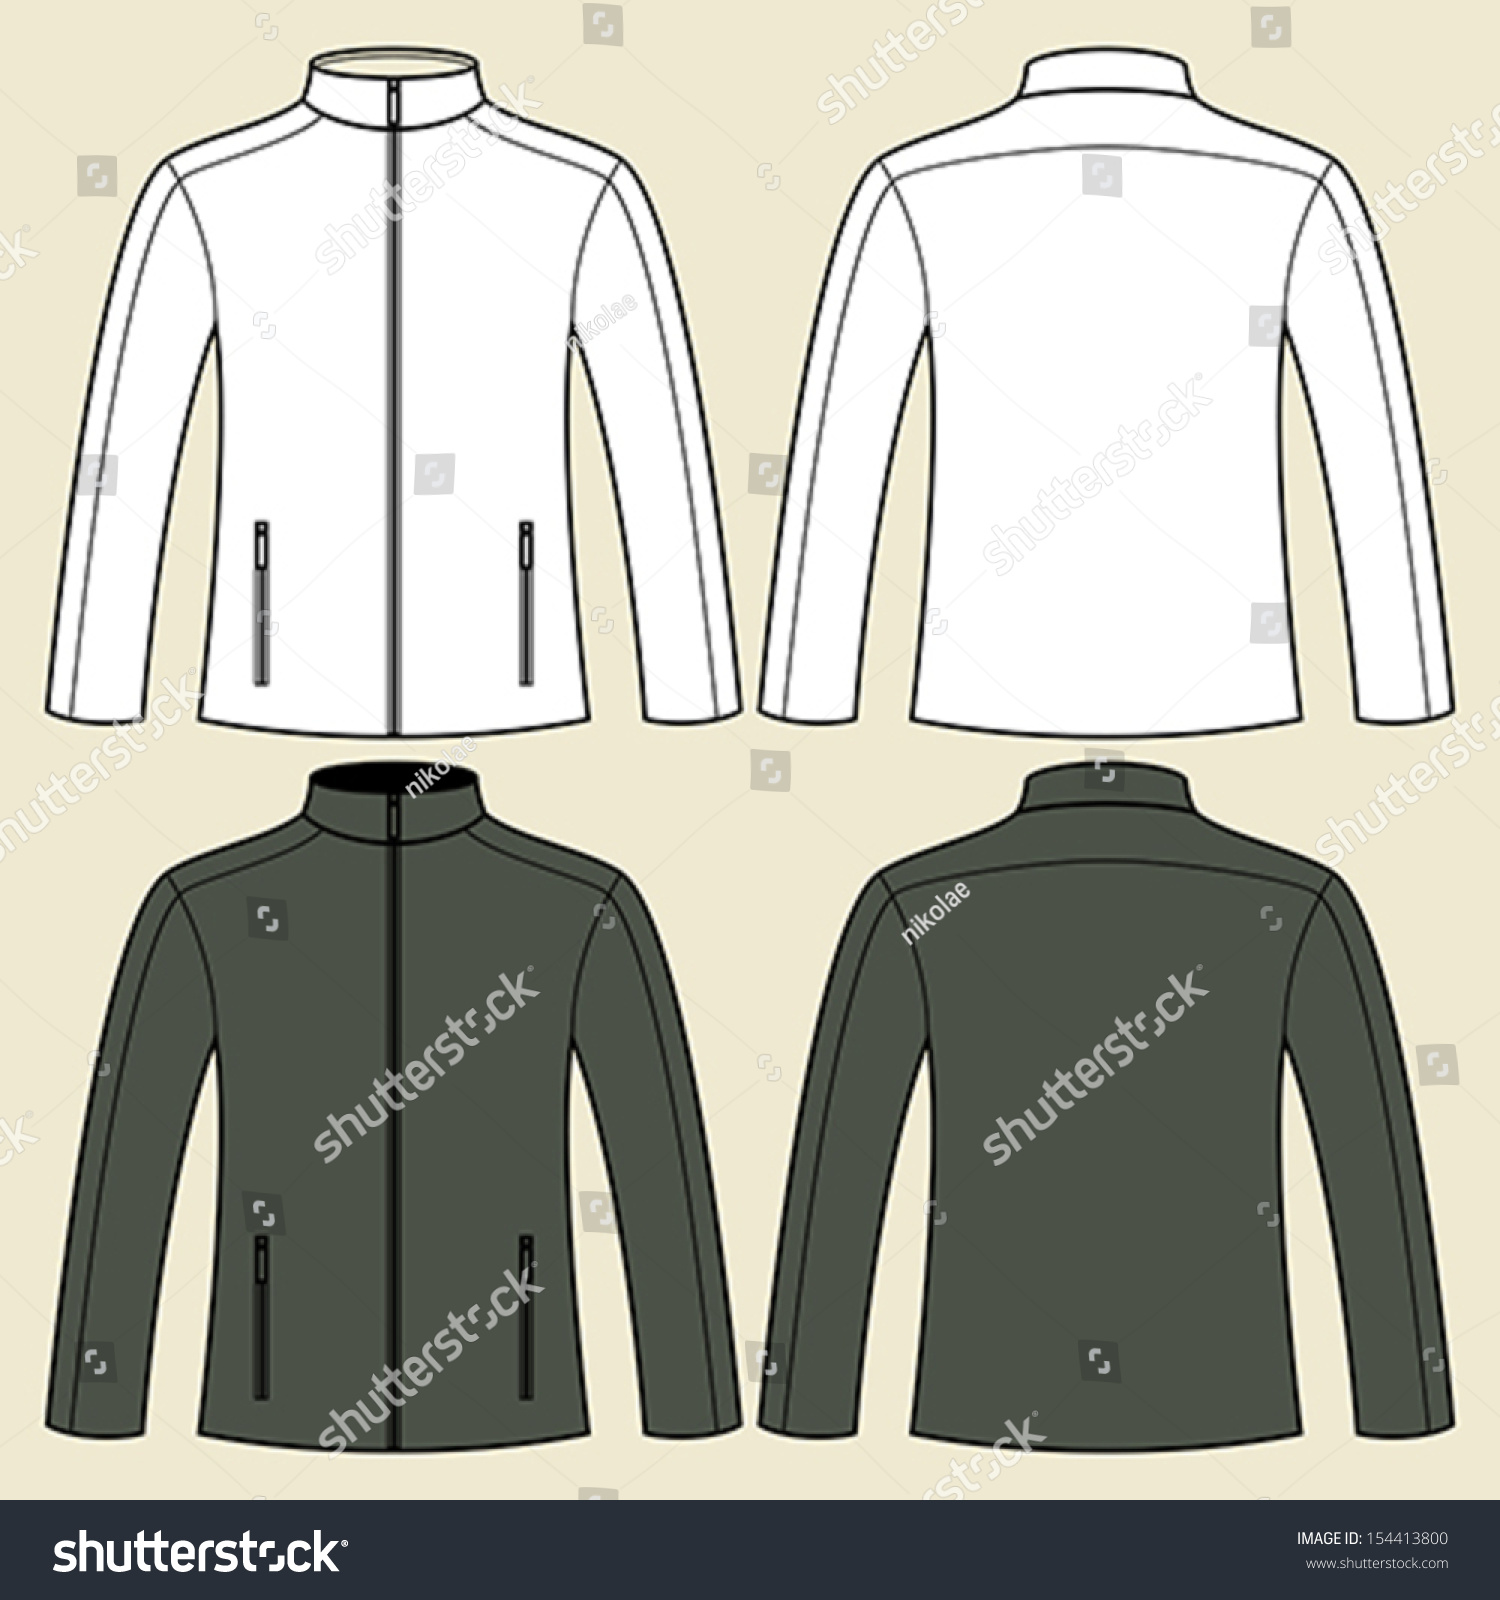 Royalty-free Jacket template in black and white -… #154413800 ...